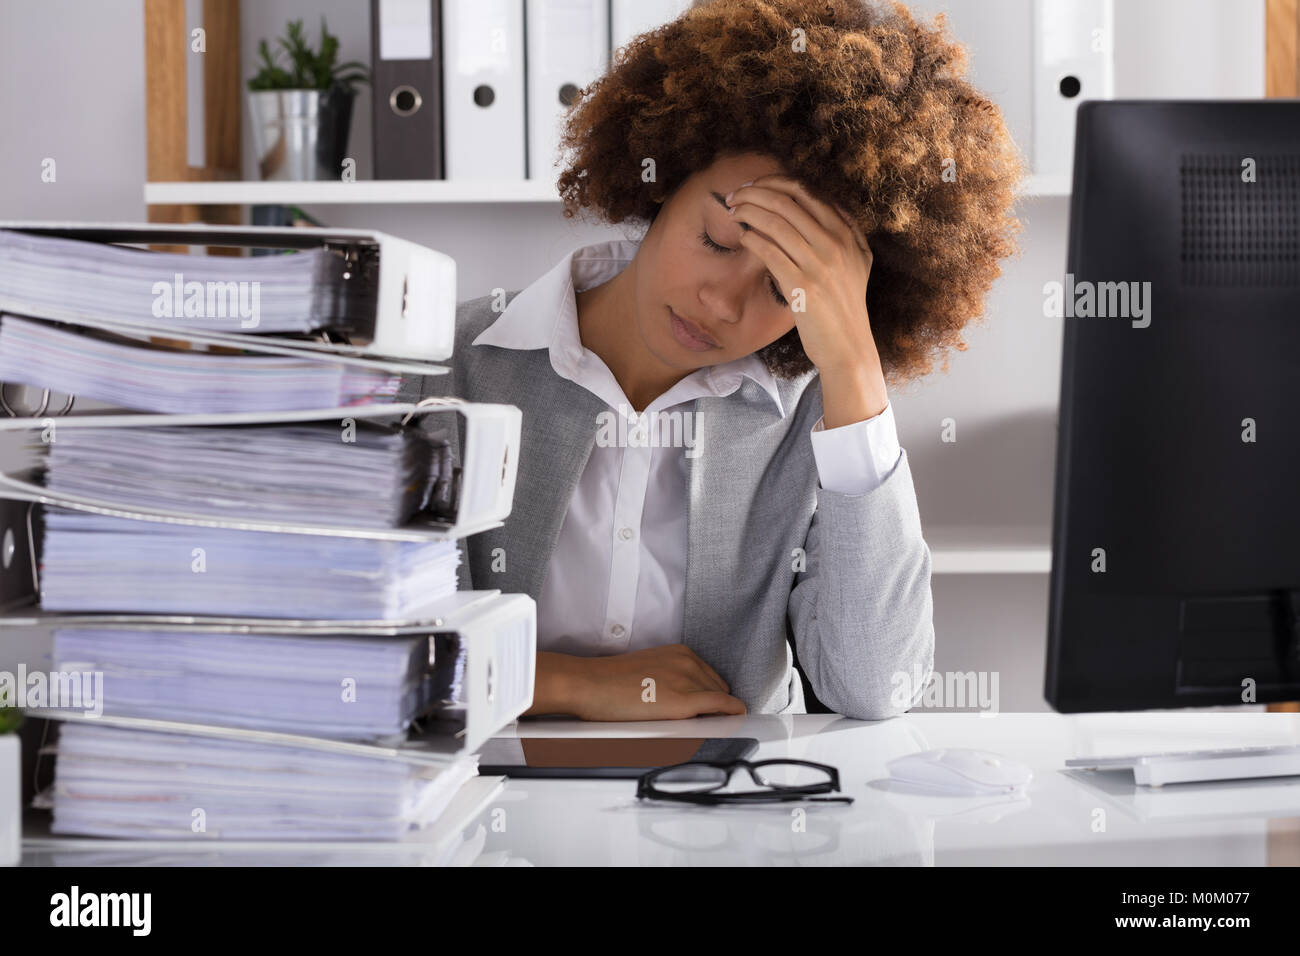 Stressful Afro American Businesswoman Sitting In Office With Stacked Of Files - Stock Image